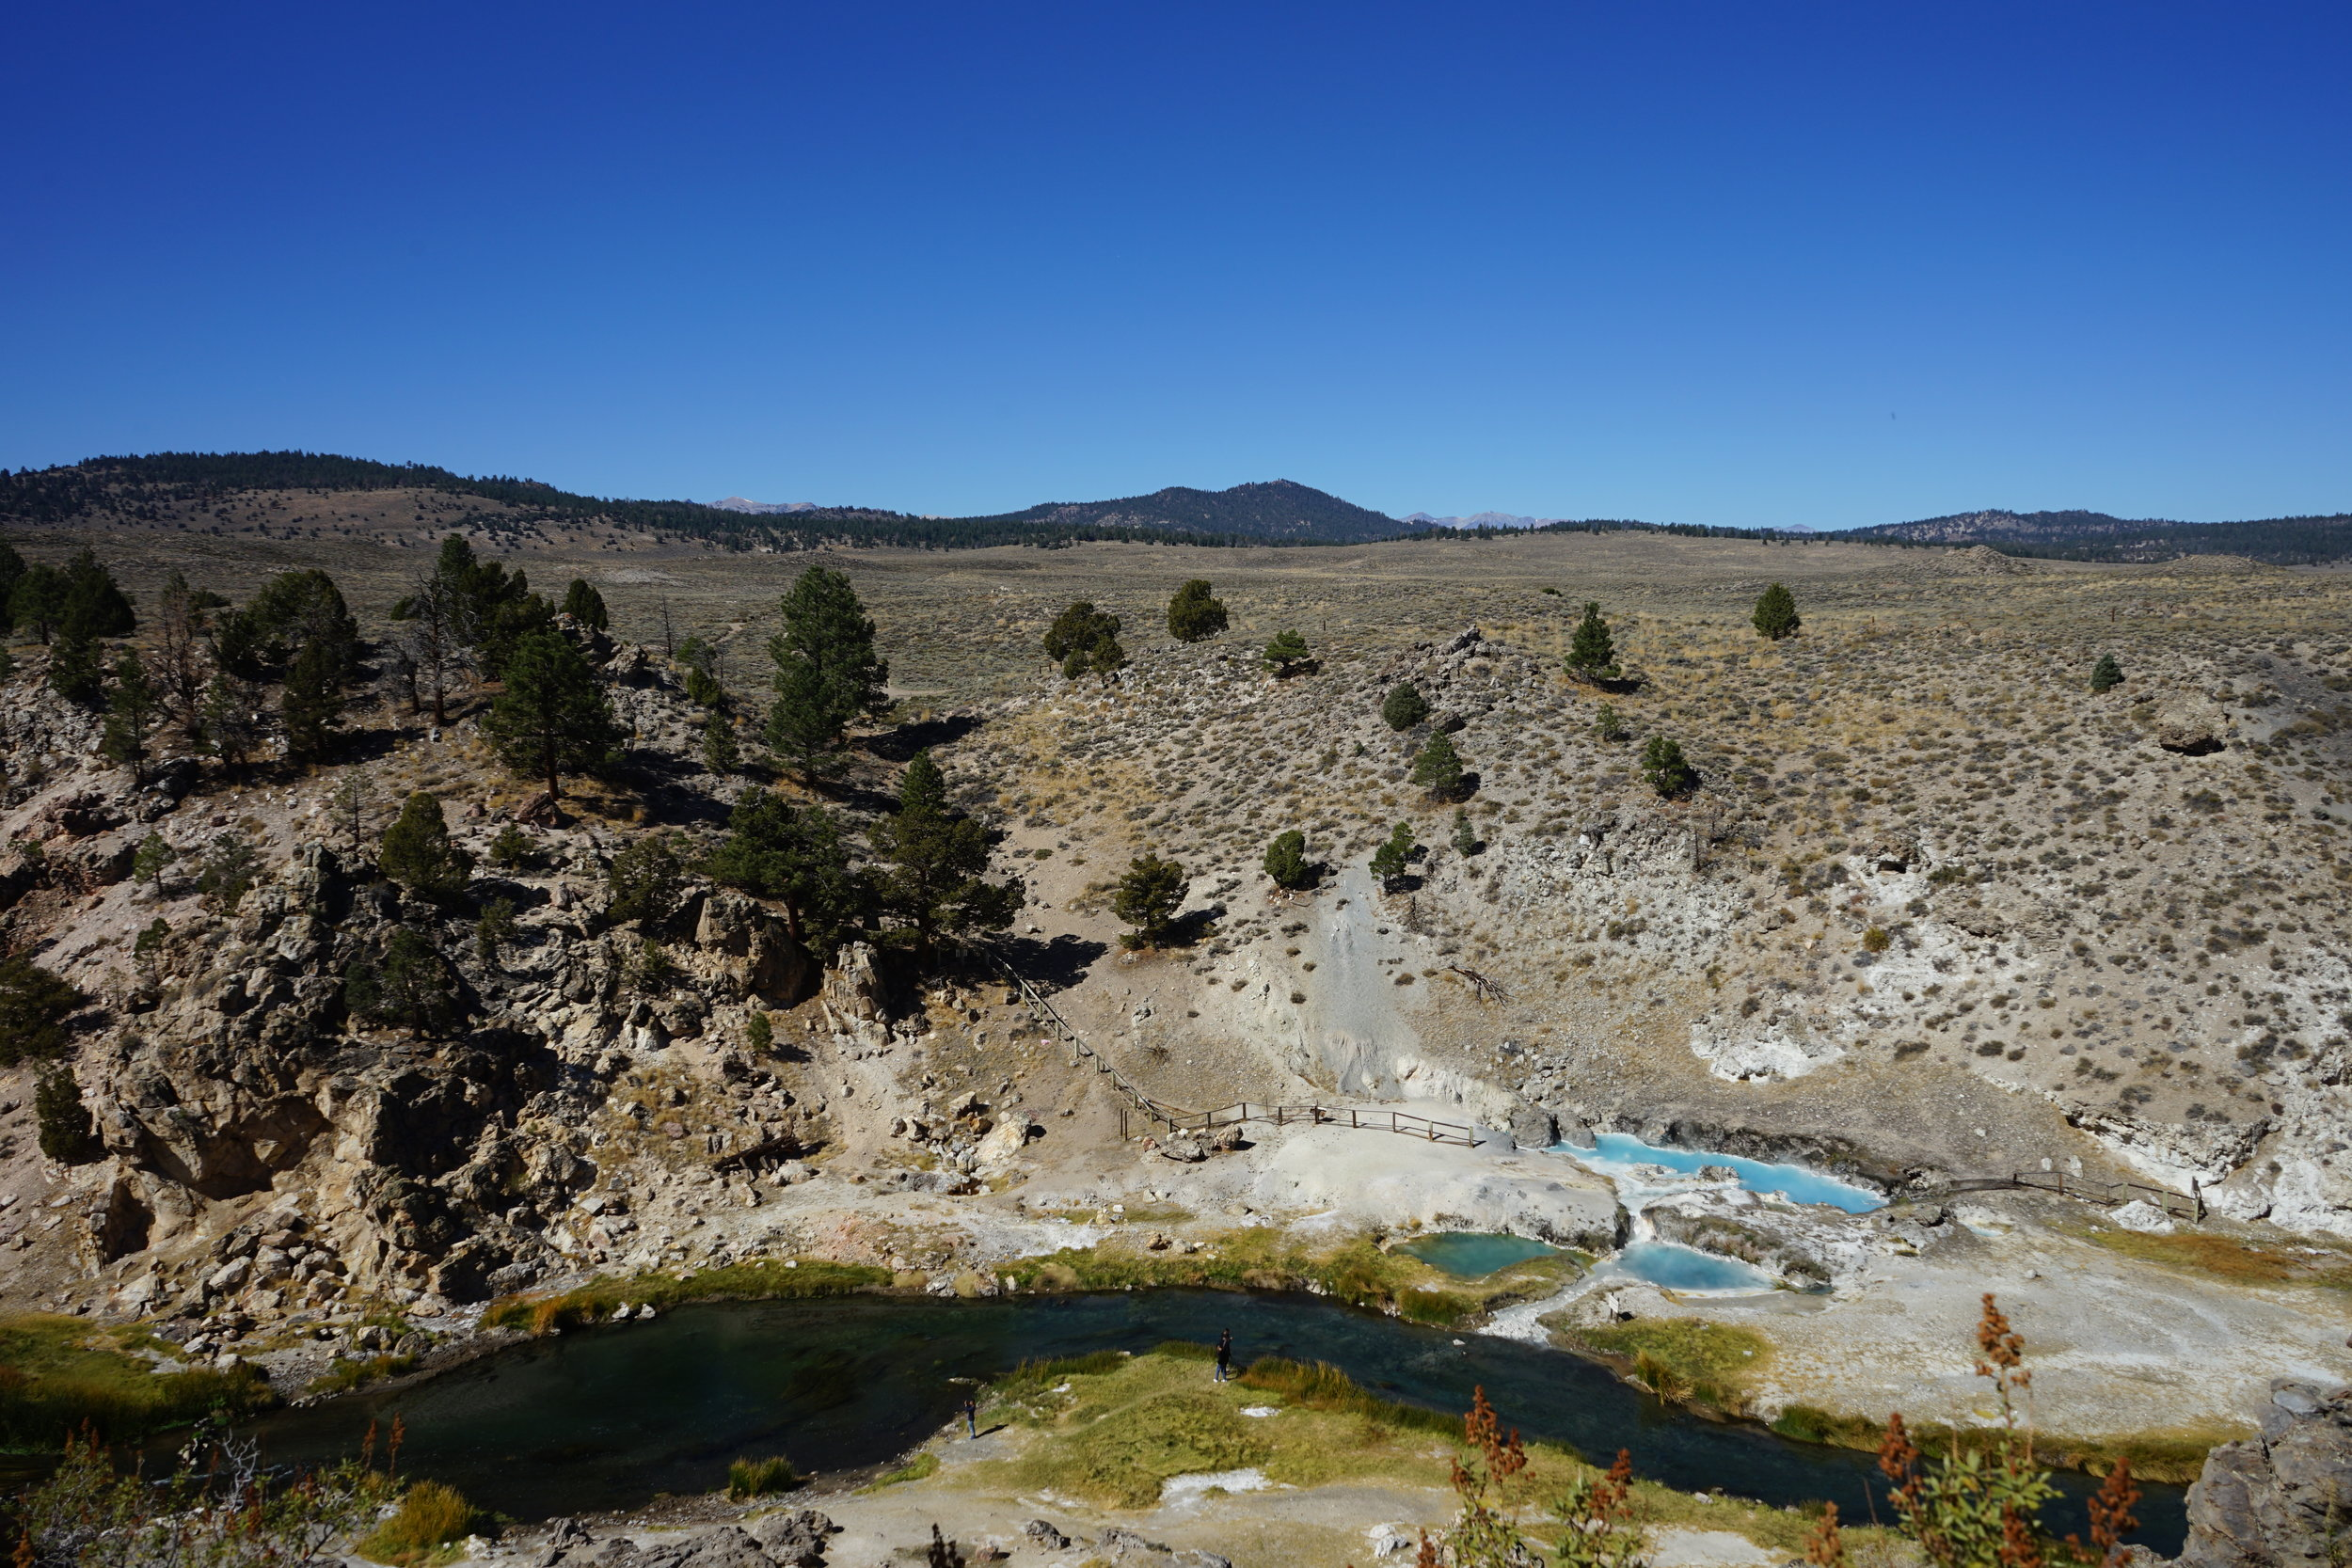 Hot Creek thermal springs in the Long Valley Caldera. The gap in solid bedrock outcrop on the far stream bank corresponds to a fault zone, in which damaged rocks are more susceptible to weathering. The spring, which appear to emanate from this fault zone, has fluctuated in temperature and flow rate over the years due to volcanic unrest. Don't go swimming in this one unless you want to end up like that couple in Dante's Peak!